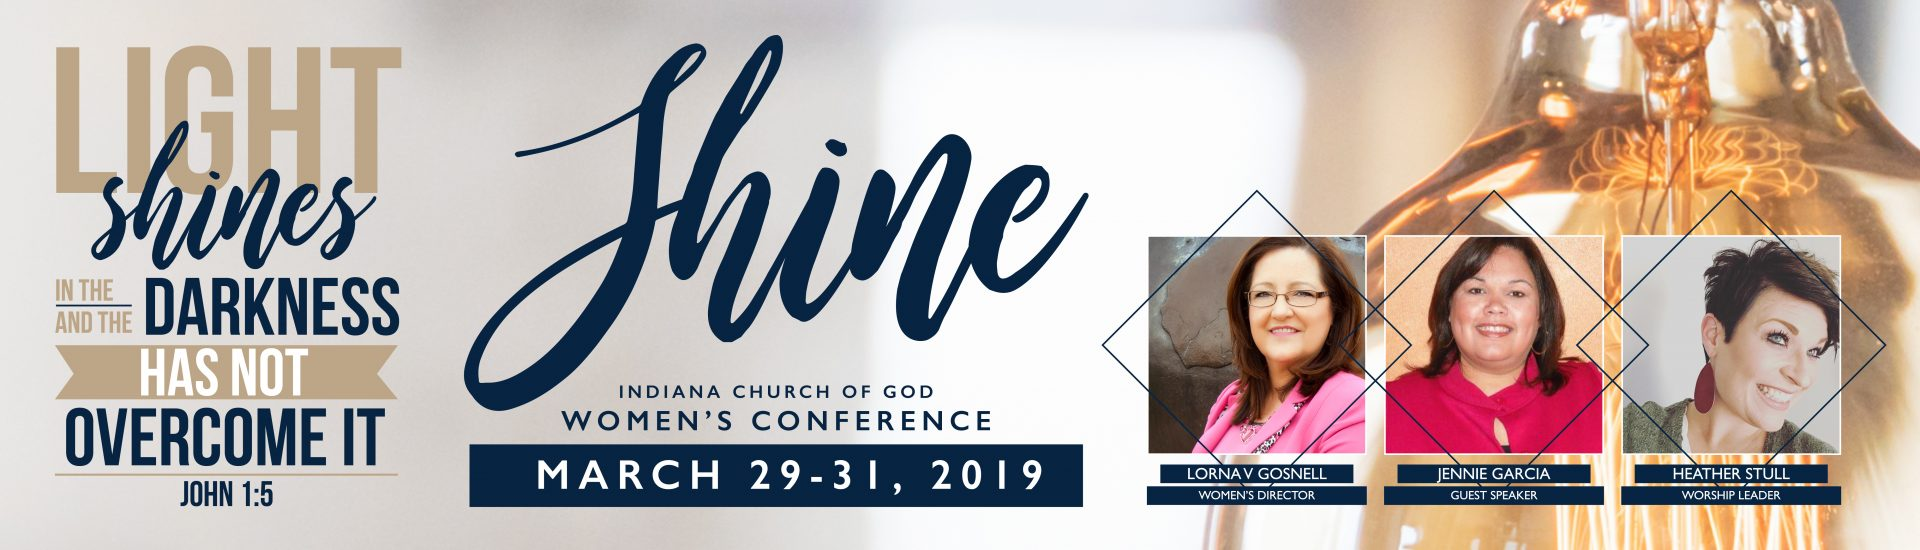 2019 Women's Conference